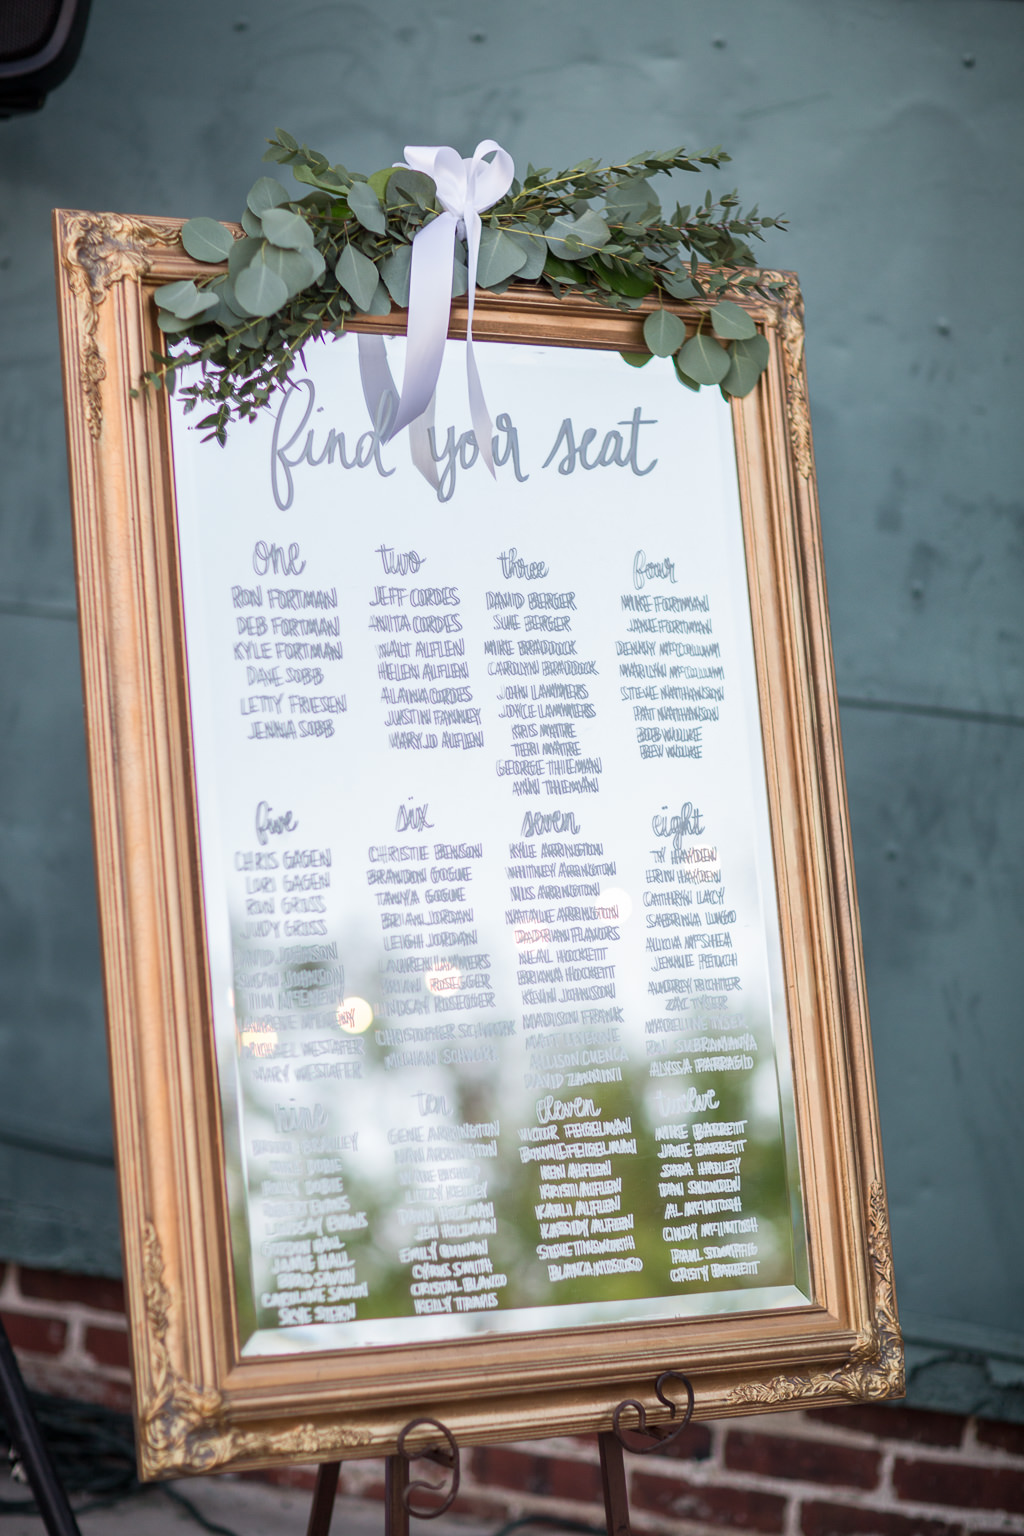 Wedding Reception Seating Chart On Mirror With Gold Frame And Greenery Decor Marry Me Tampa Bay Local Real Wedding Inspiration Vendor Recommendation Reviews